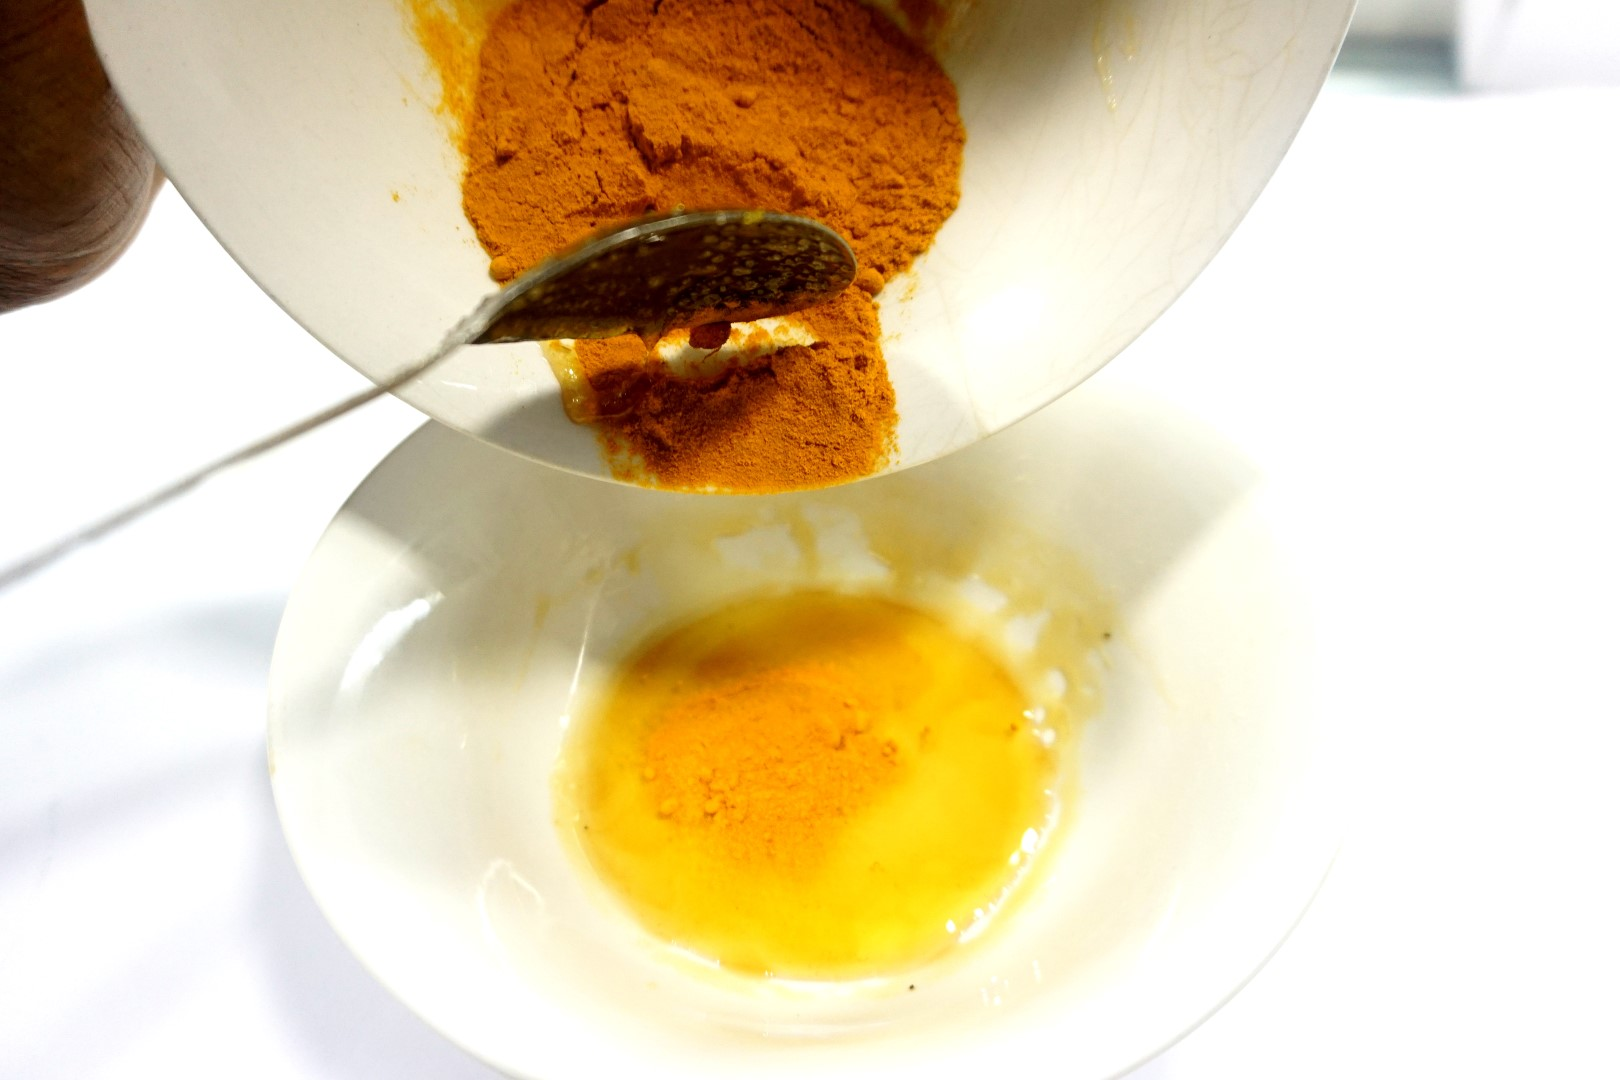 Turmeric and honey for DIY homemade face mask